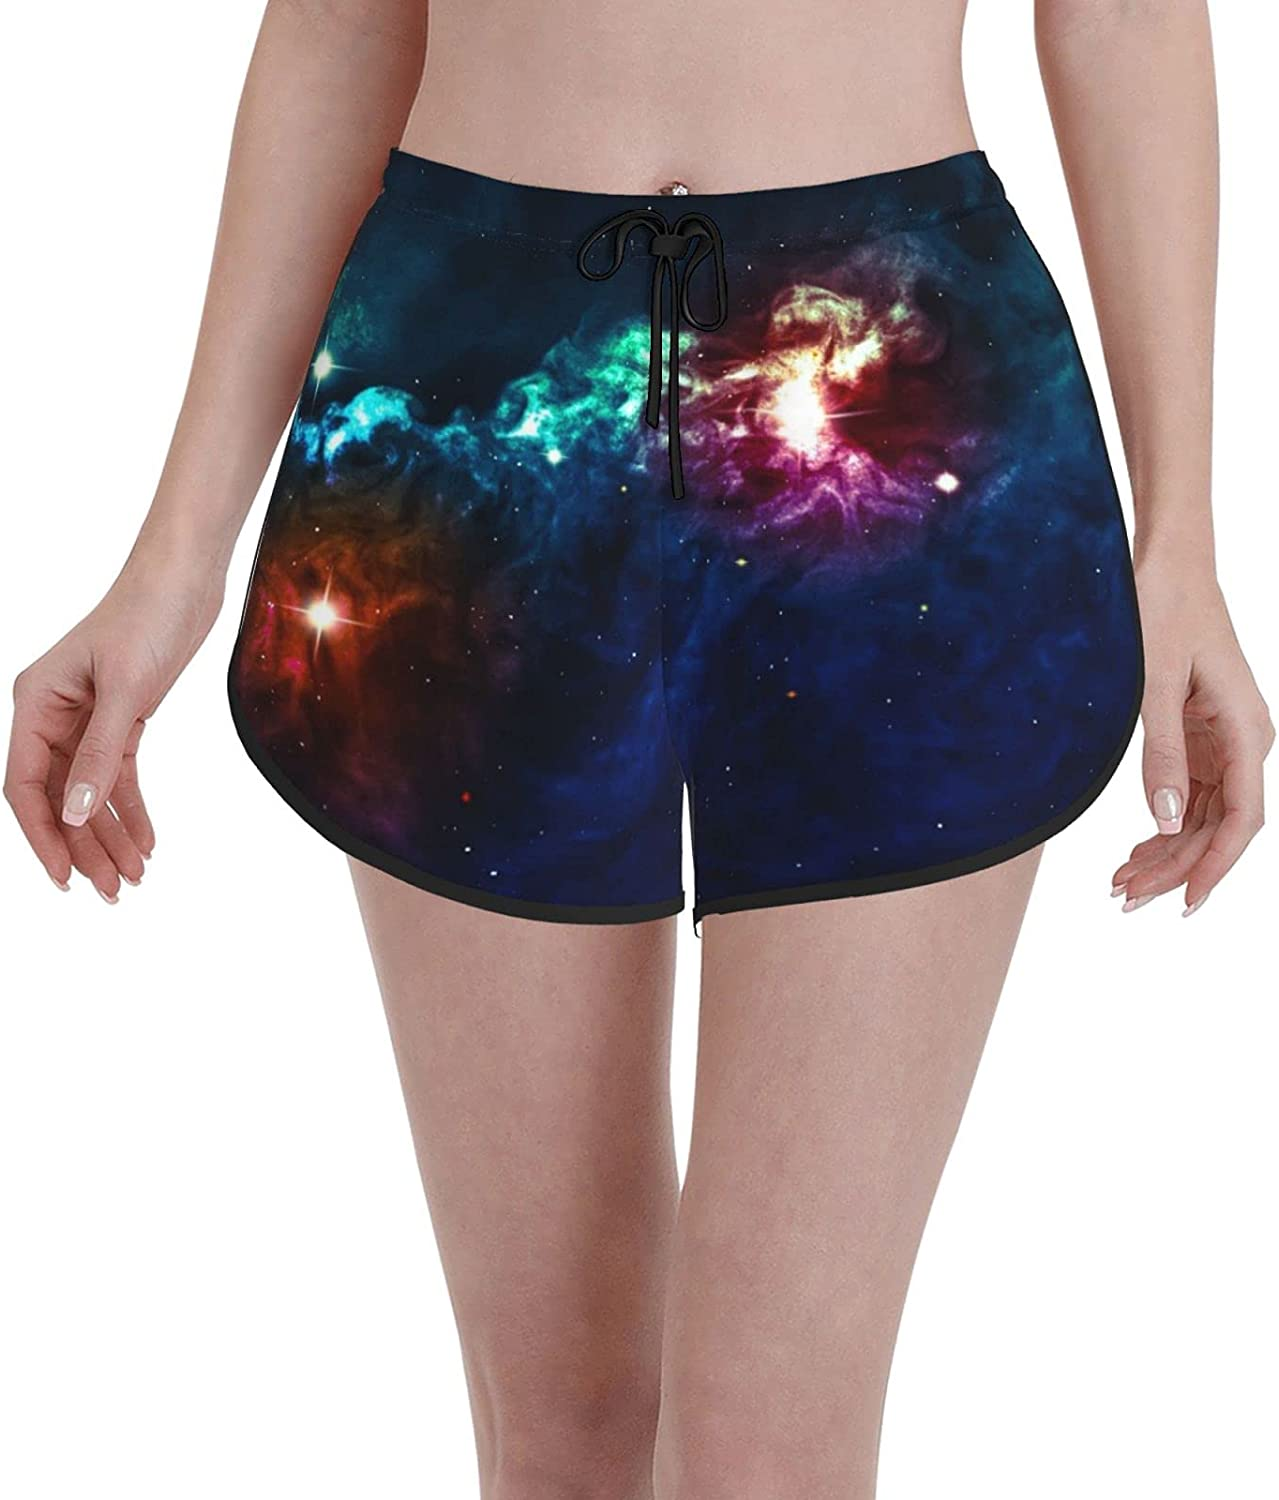 Women's Girl's Swim Trunks 40% OFF Cheap Sale Galactic On Colo Milky Max 52% OFF Way Image